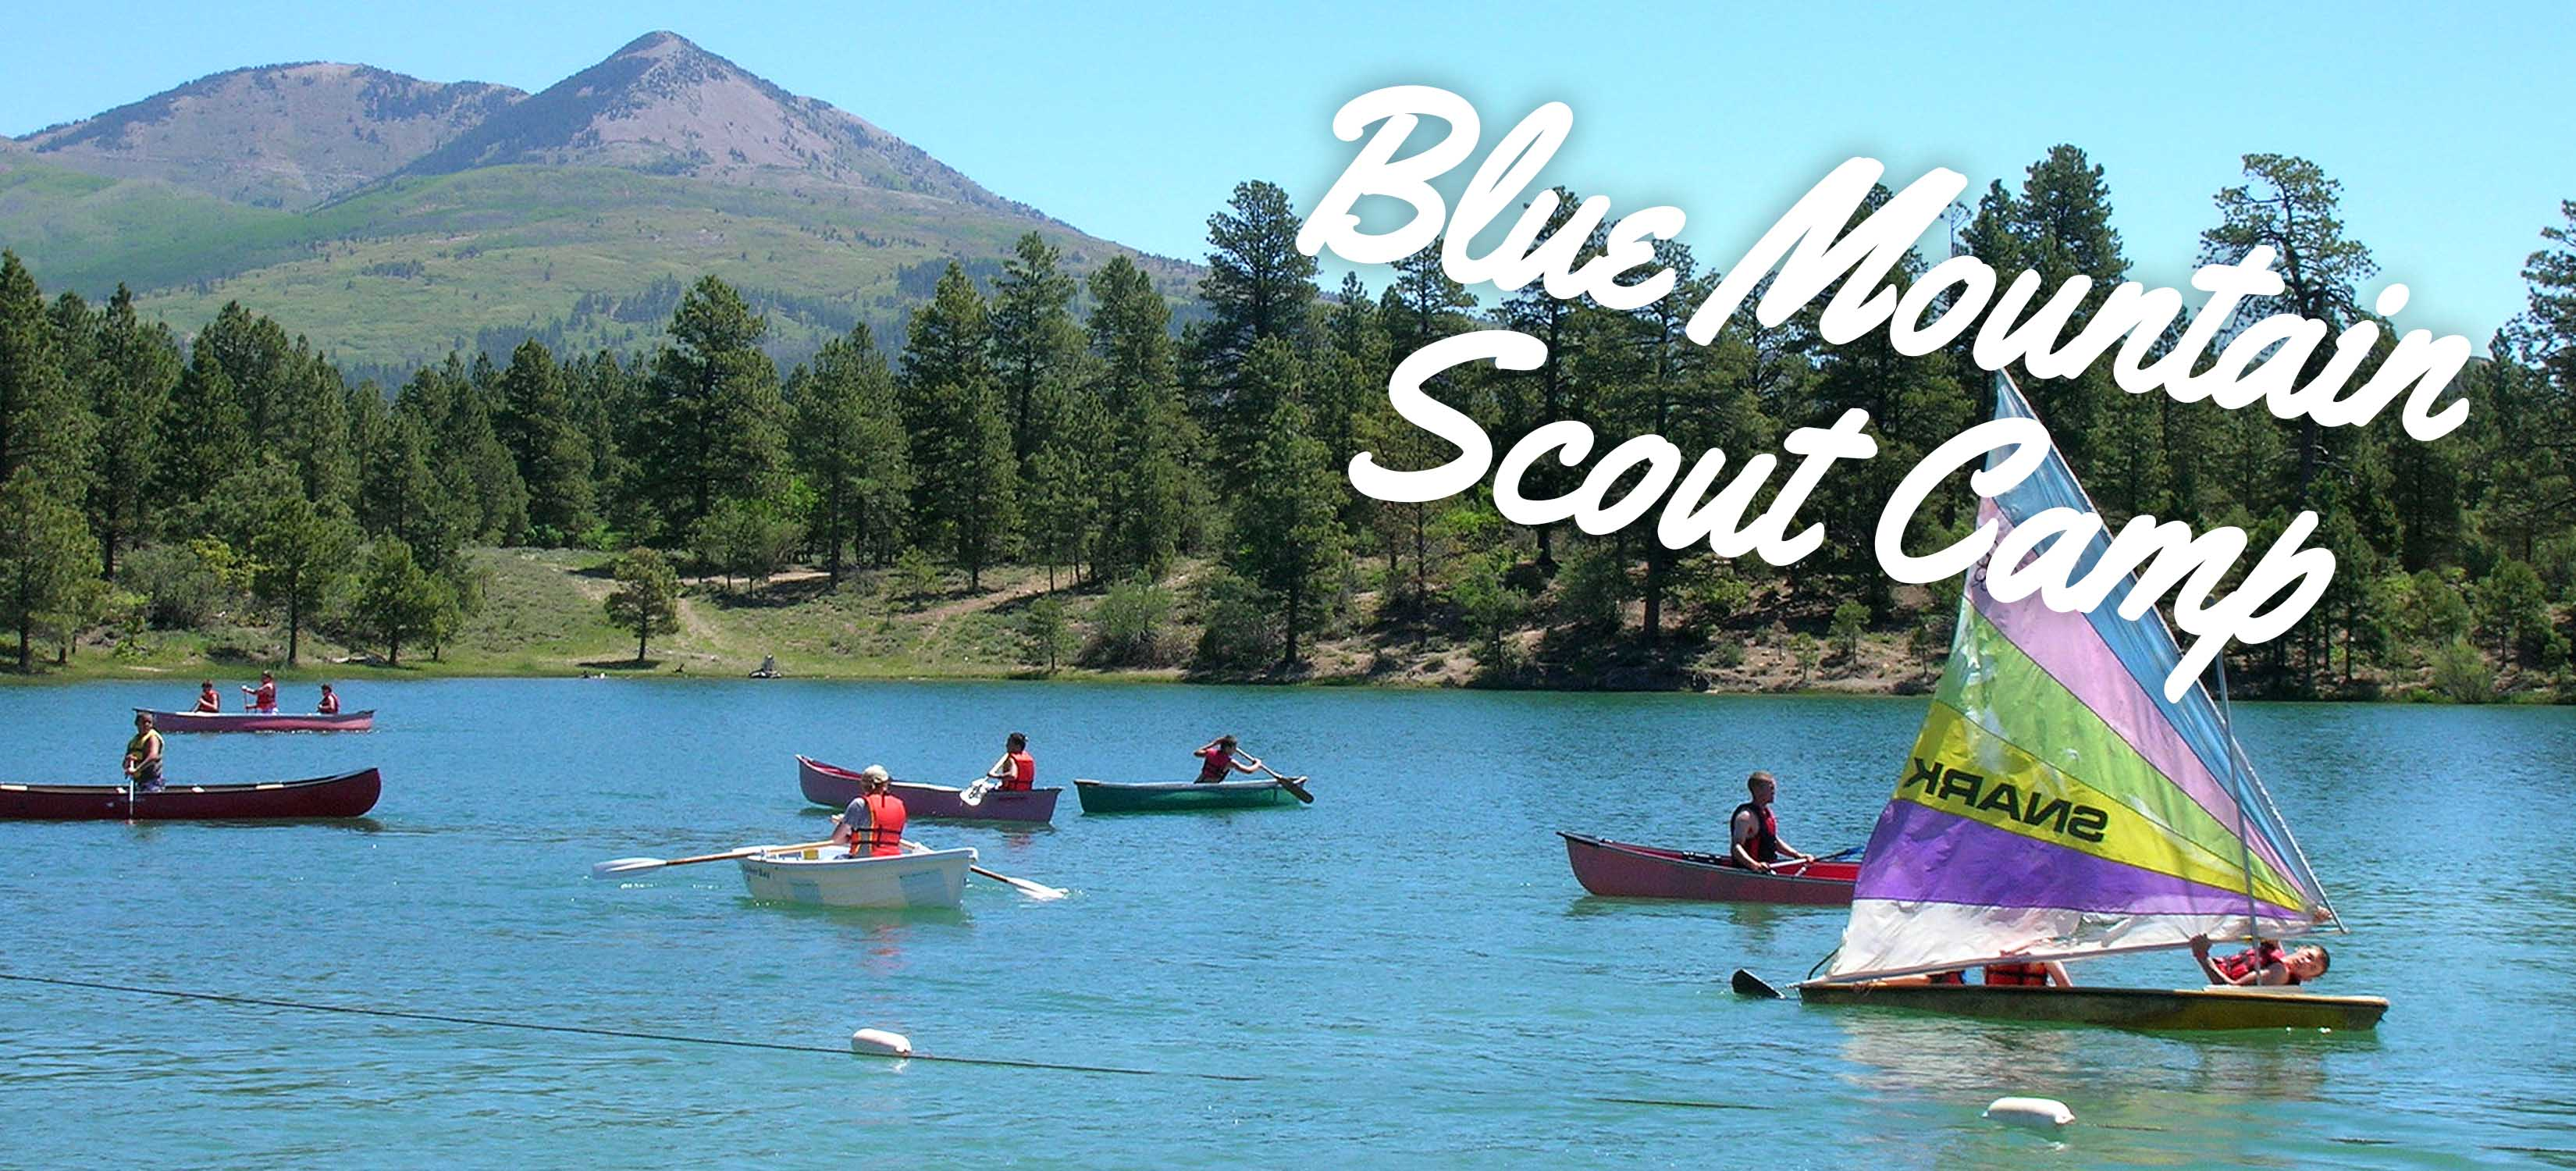 Blue Mountain Scout Camp